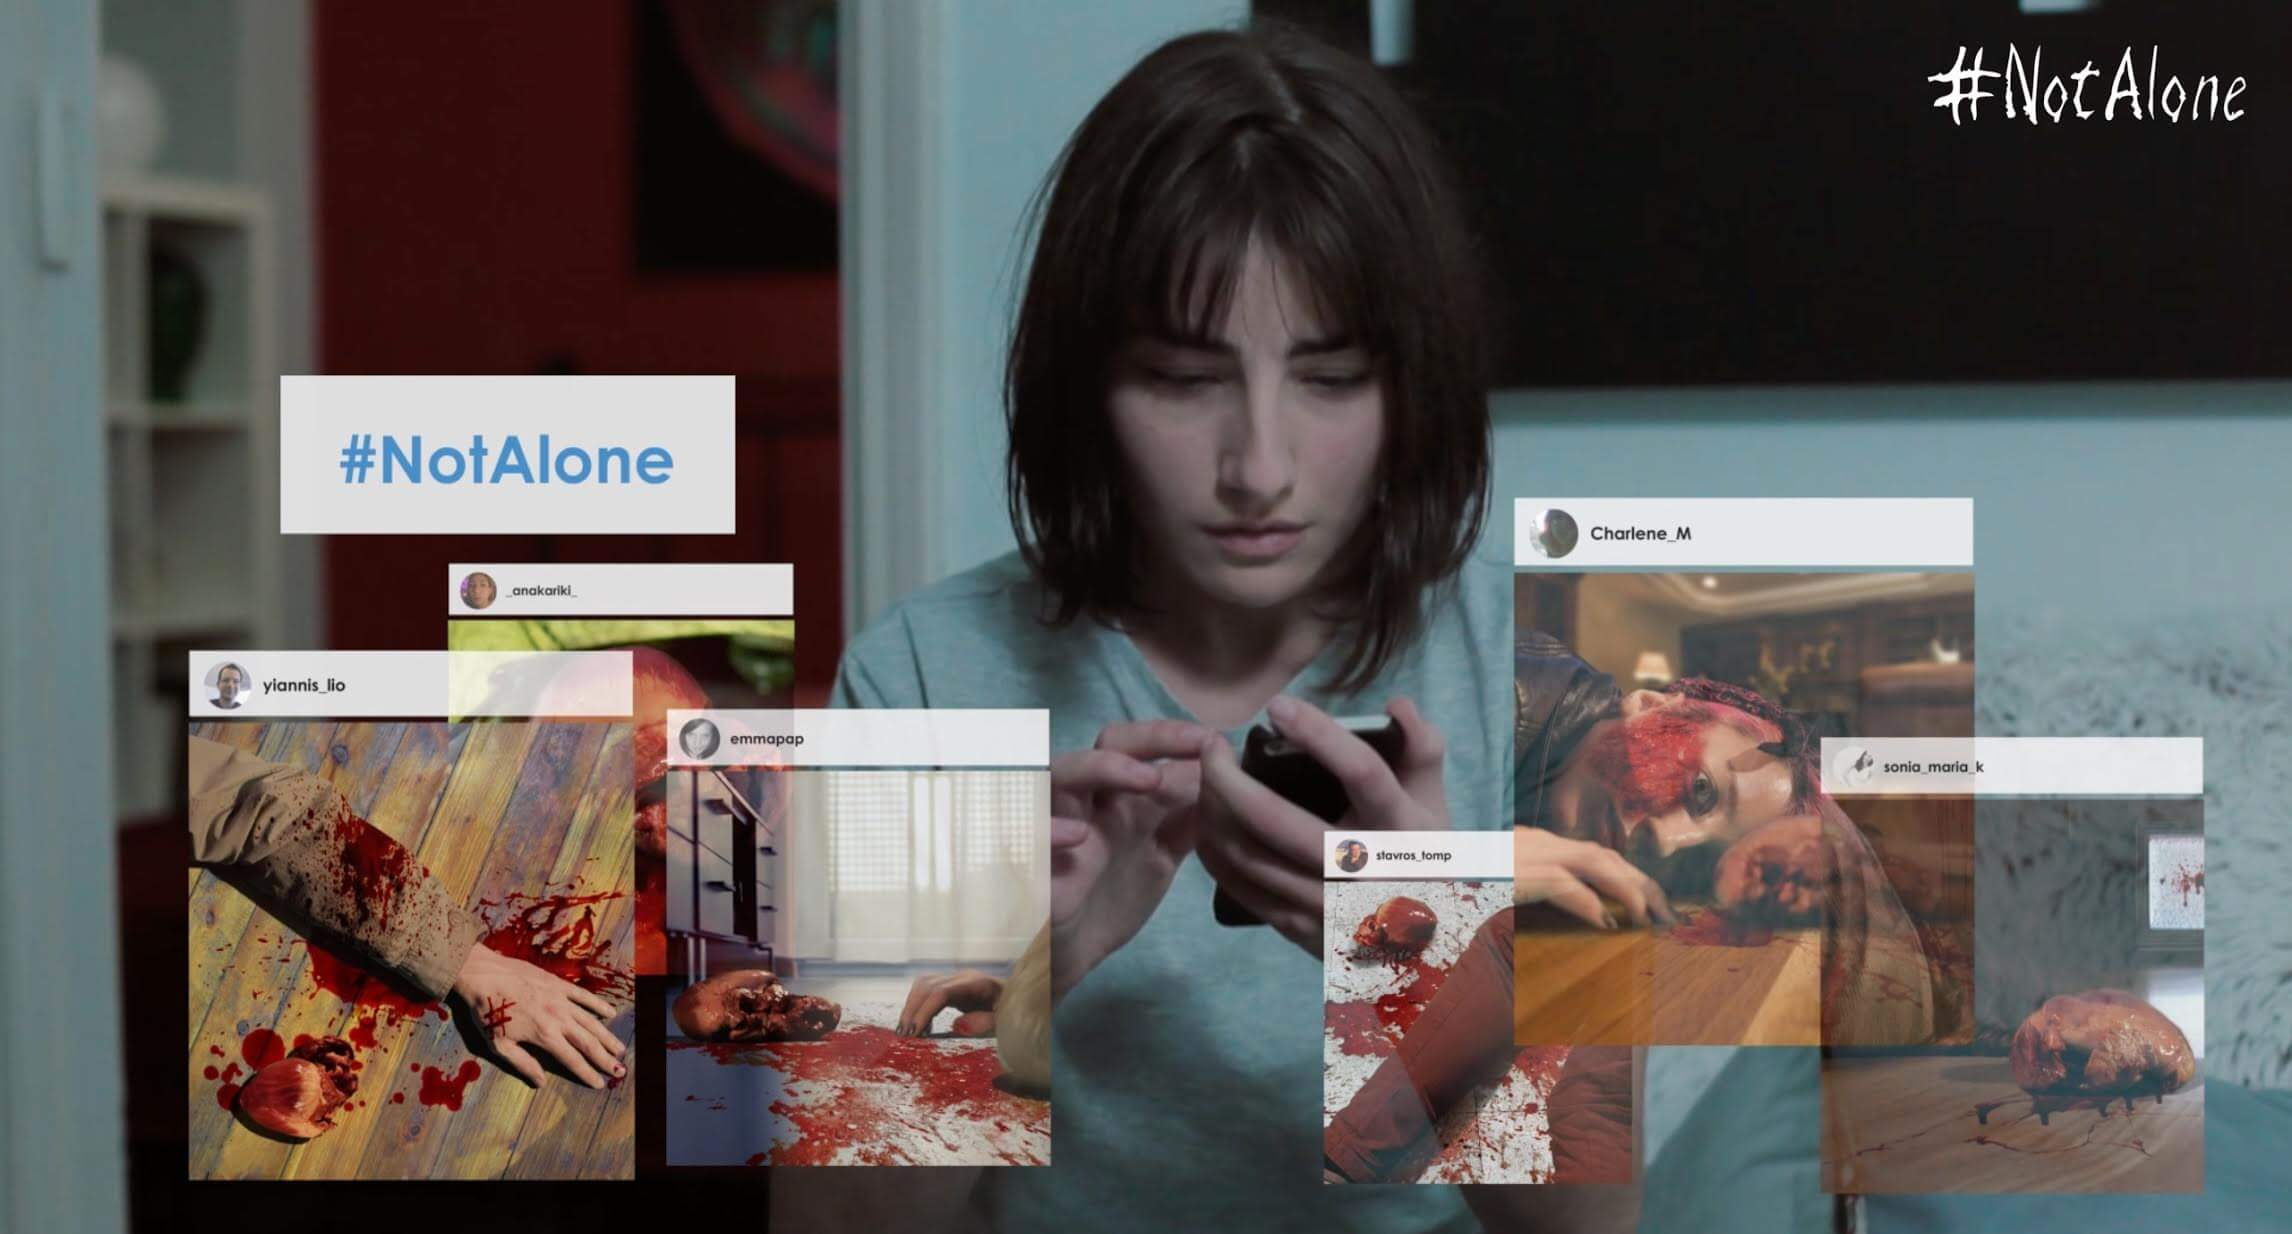 not alone 1 - Watch Now: Social Media Horror Short #NotAlone